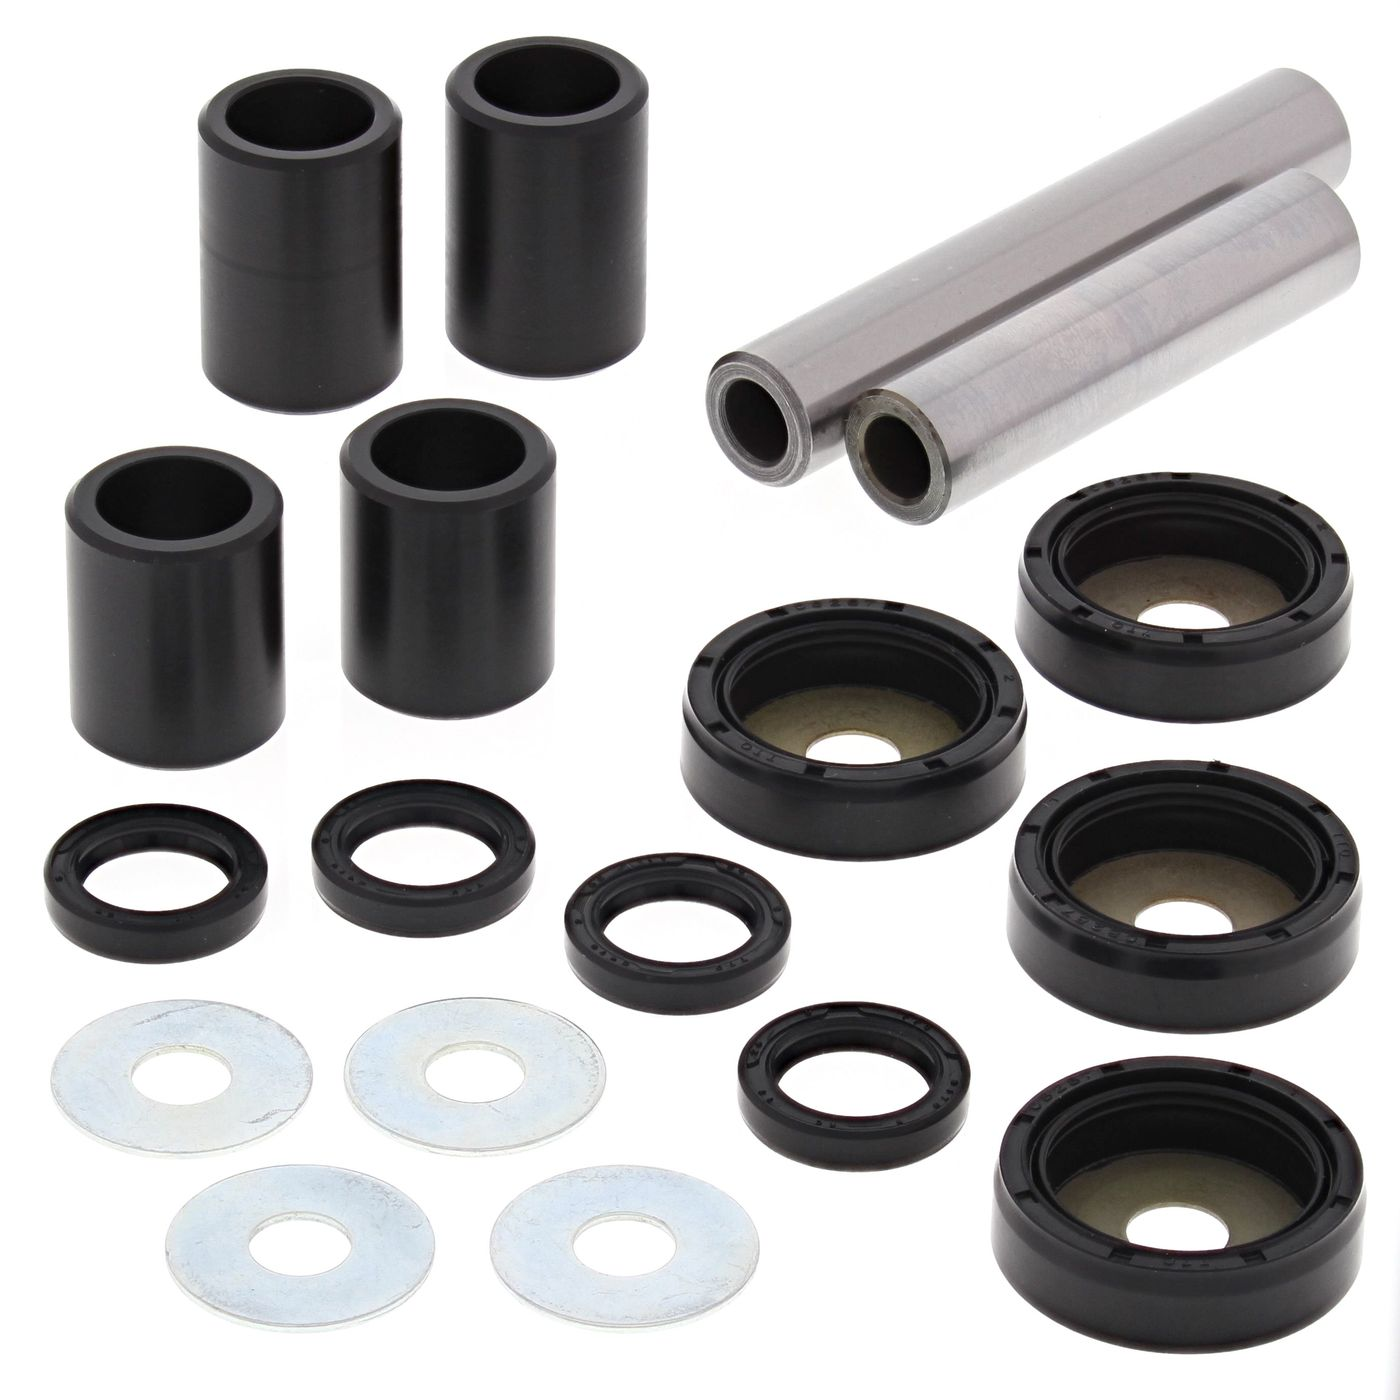 wrp rear ind. knuckle kits - WRP501045-K image